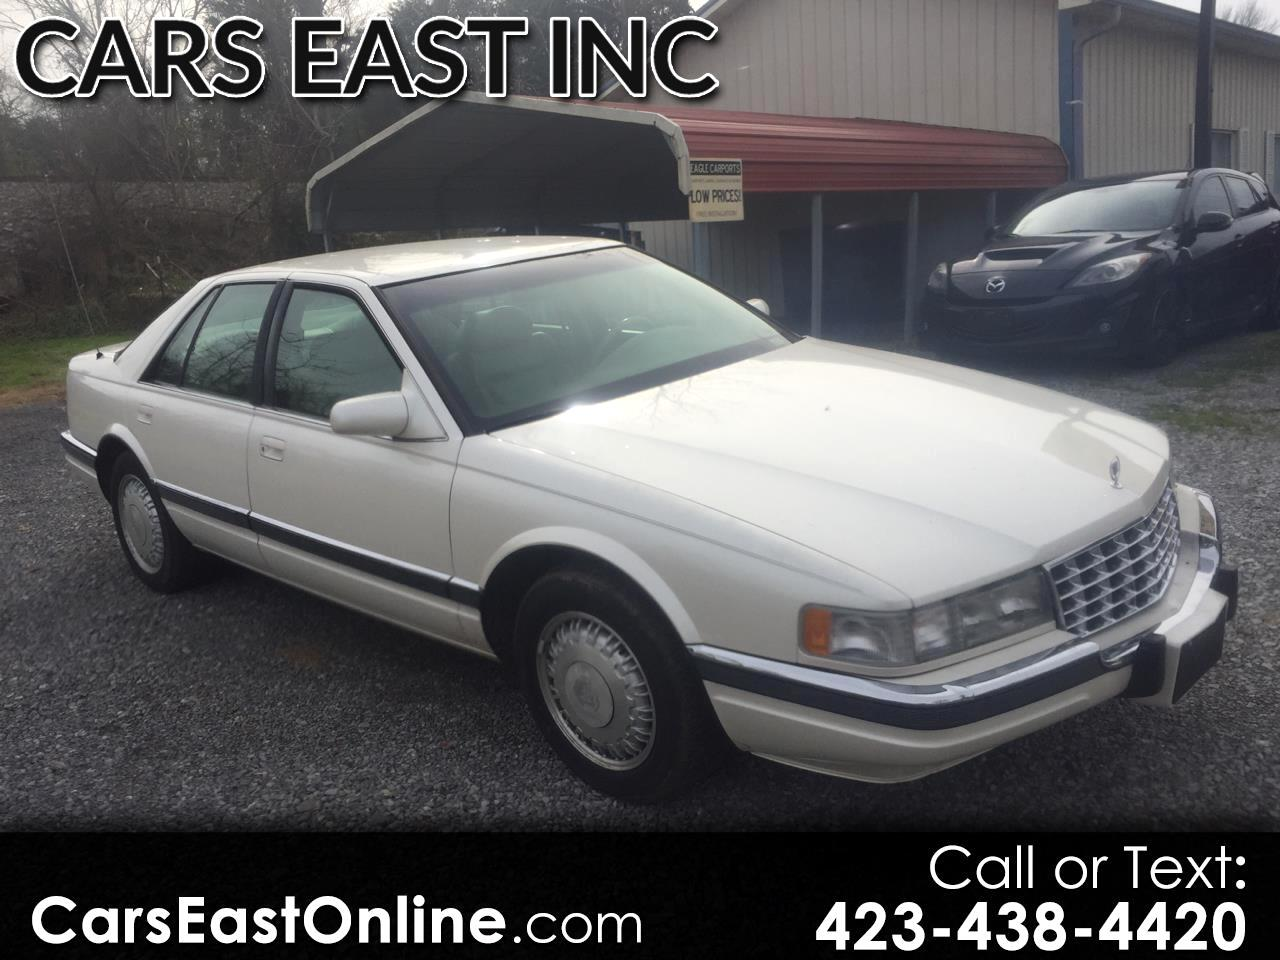 1994 Cadillac Seville 4dr Luxury Sedan SLS